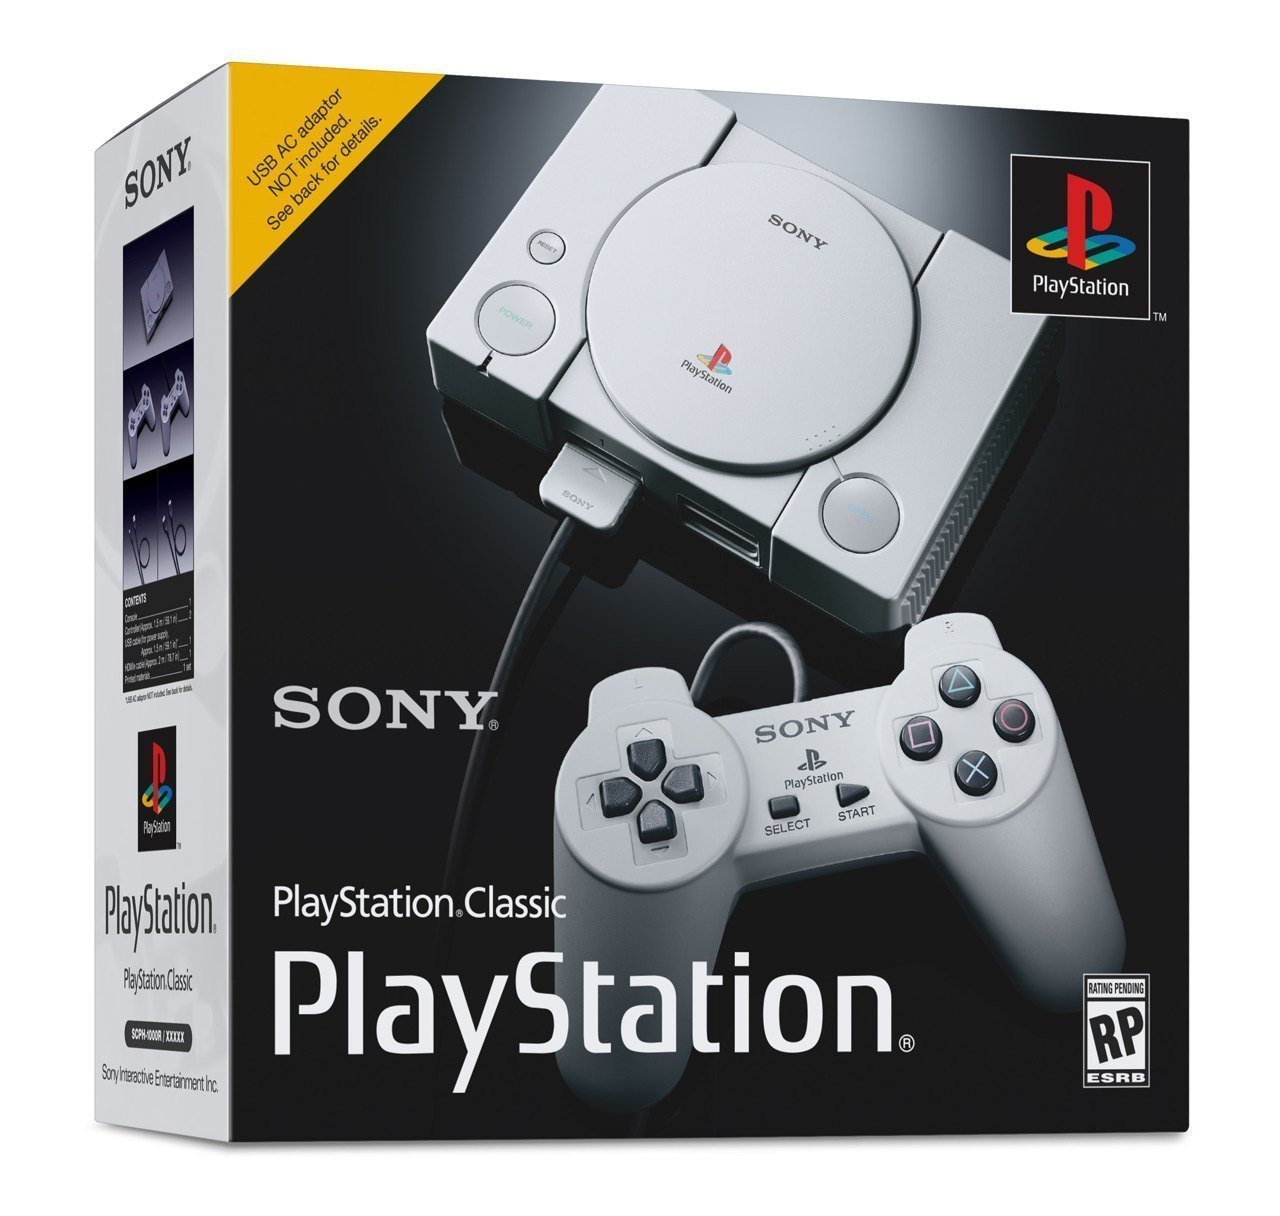 Sony Reveals The PlayStation Classic, Coming December